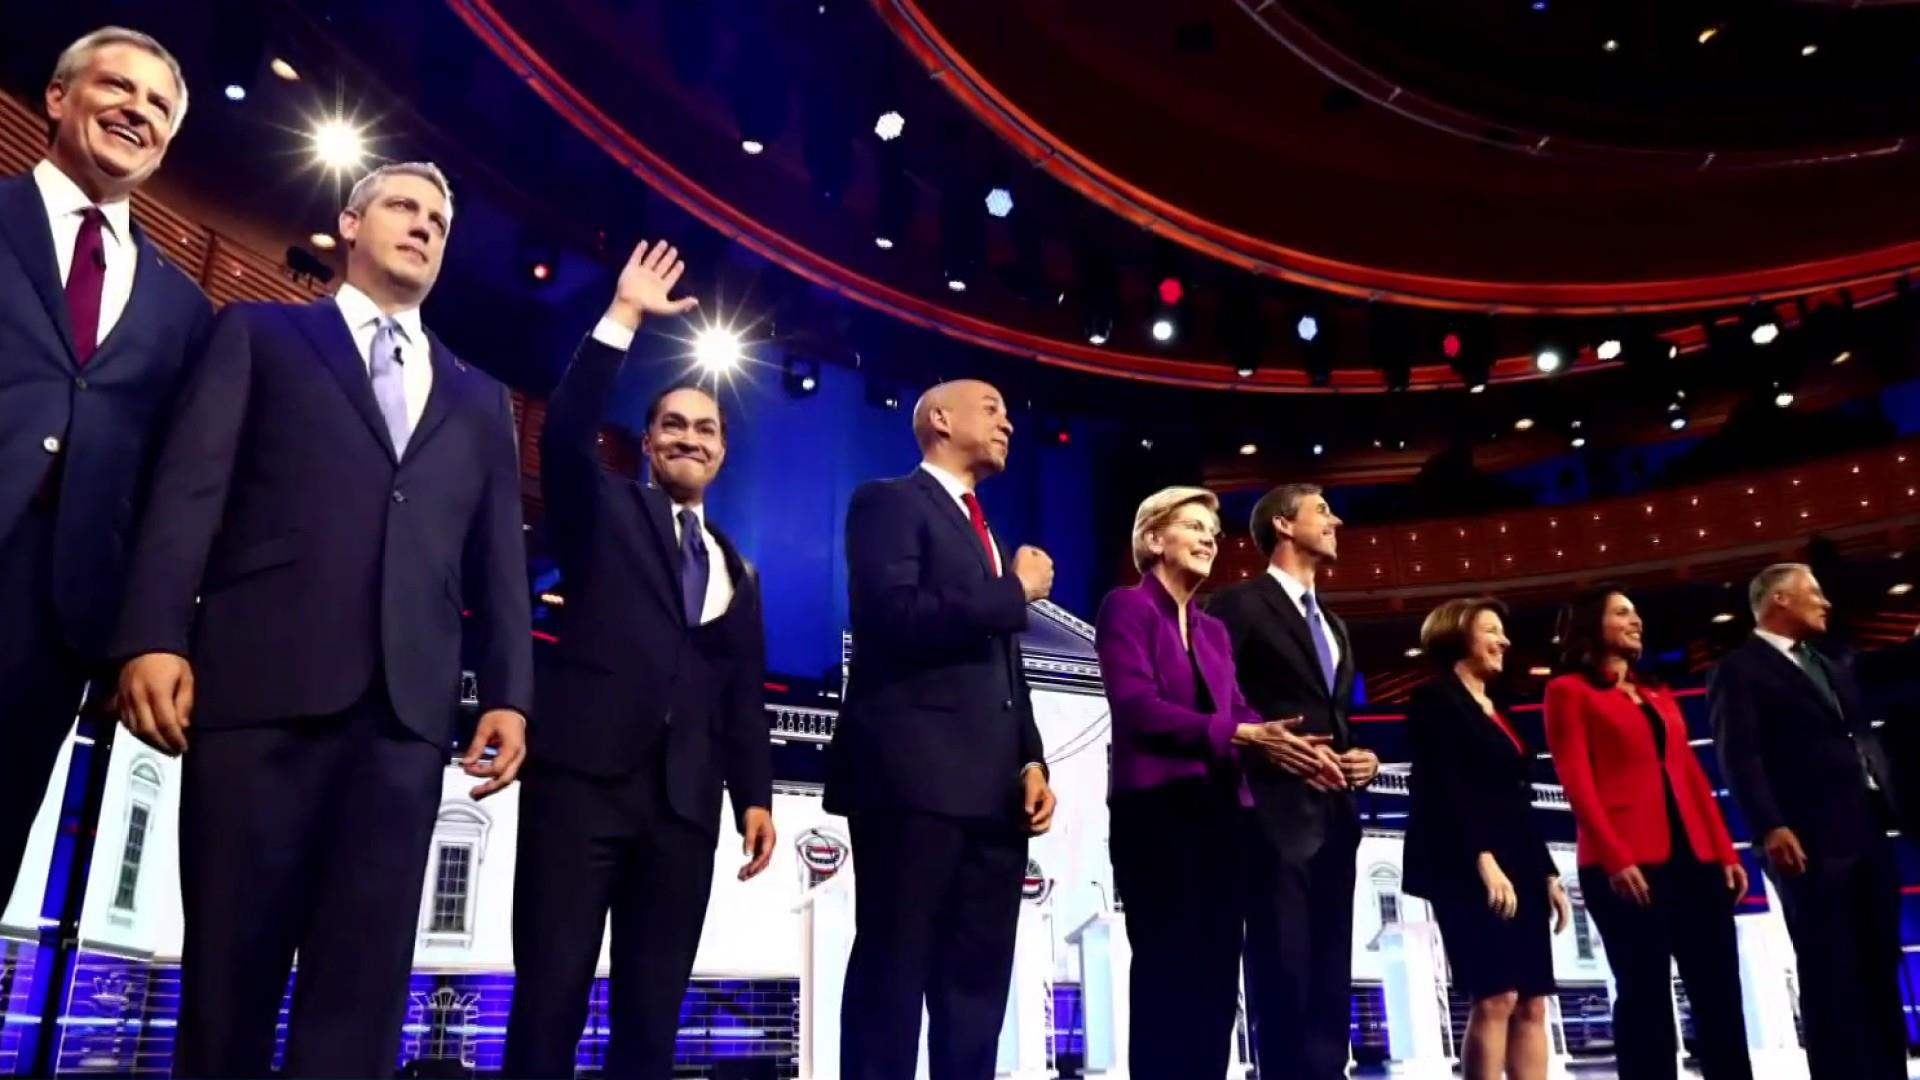 Did Dems make their case in first night of debates?